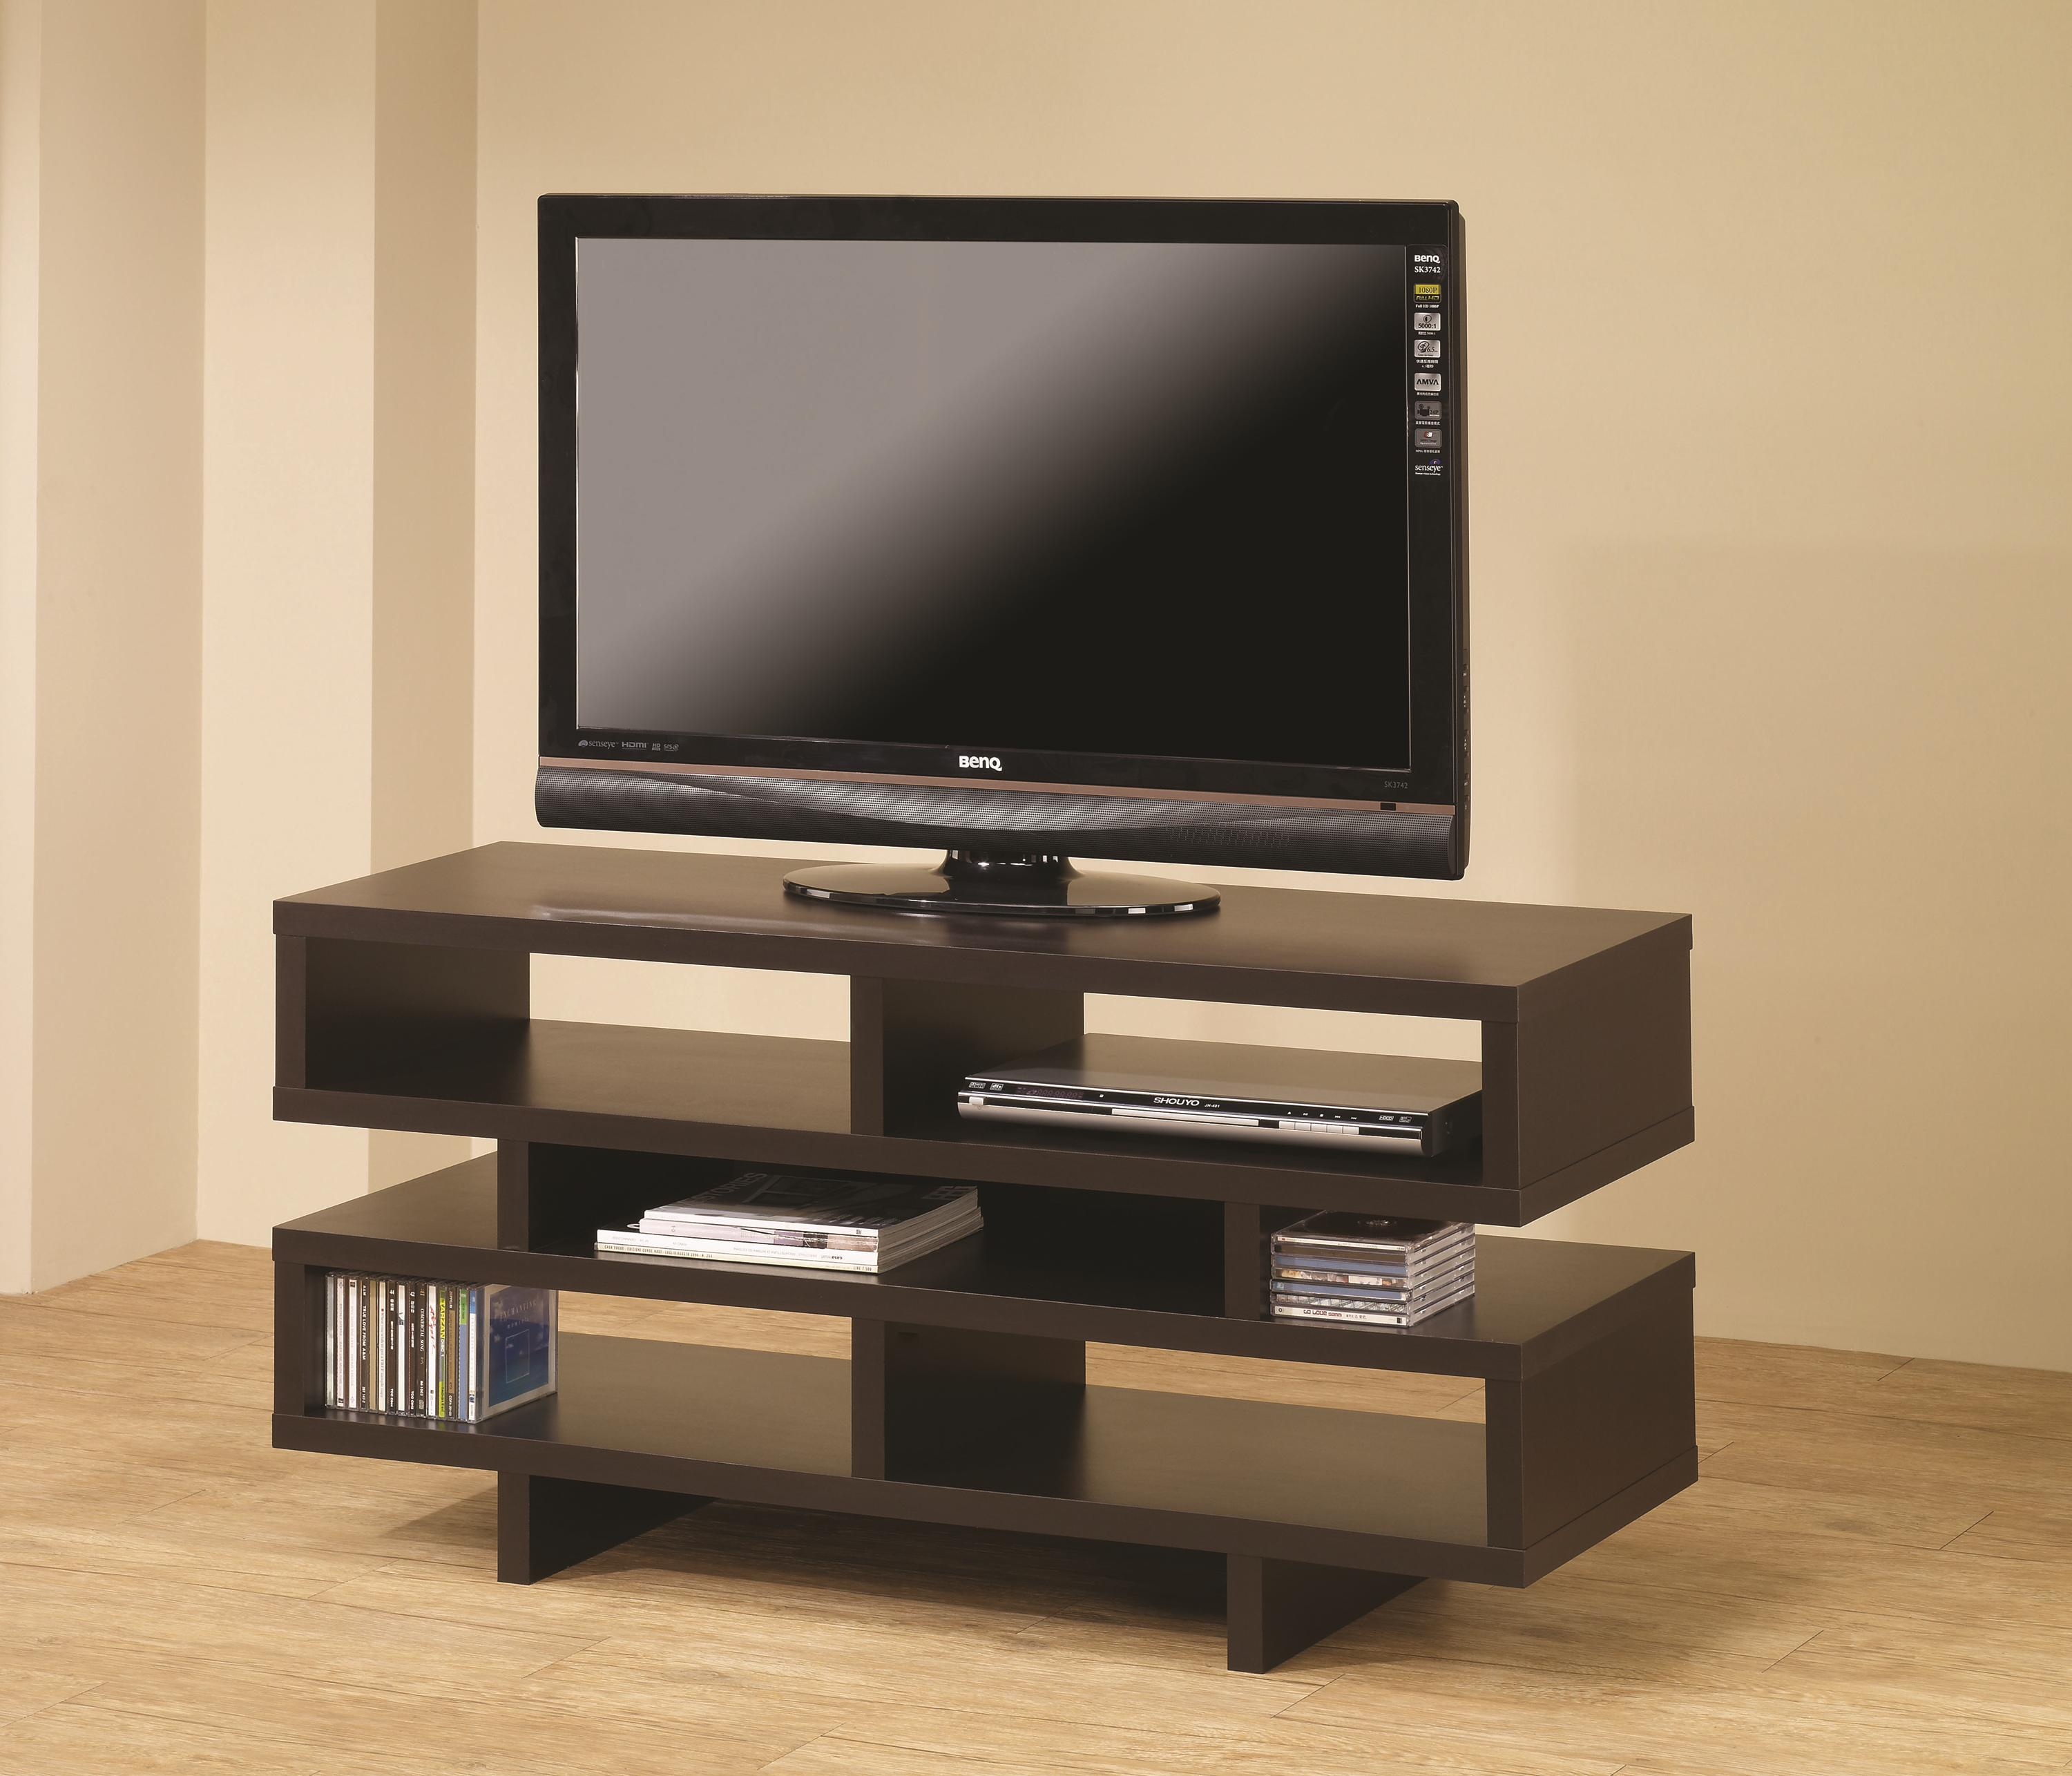 TV Furniture Stands u2013 SearchBulldog.com